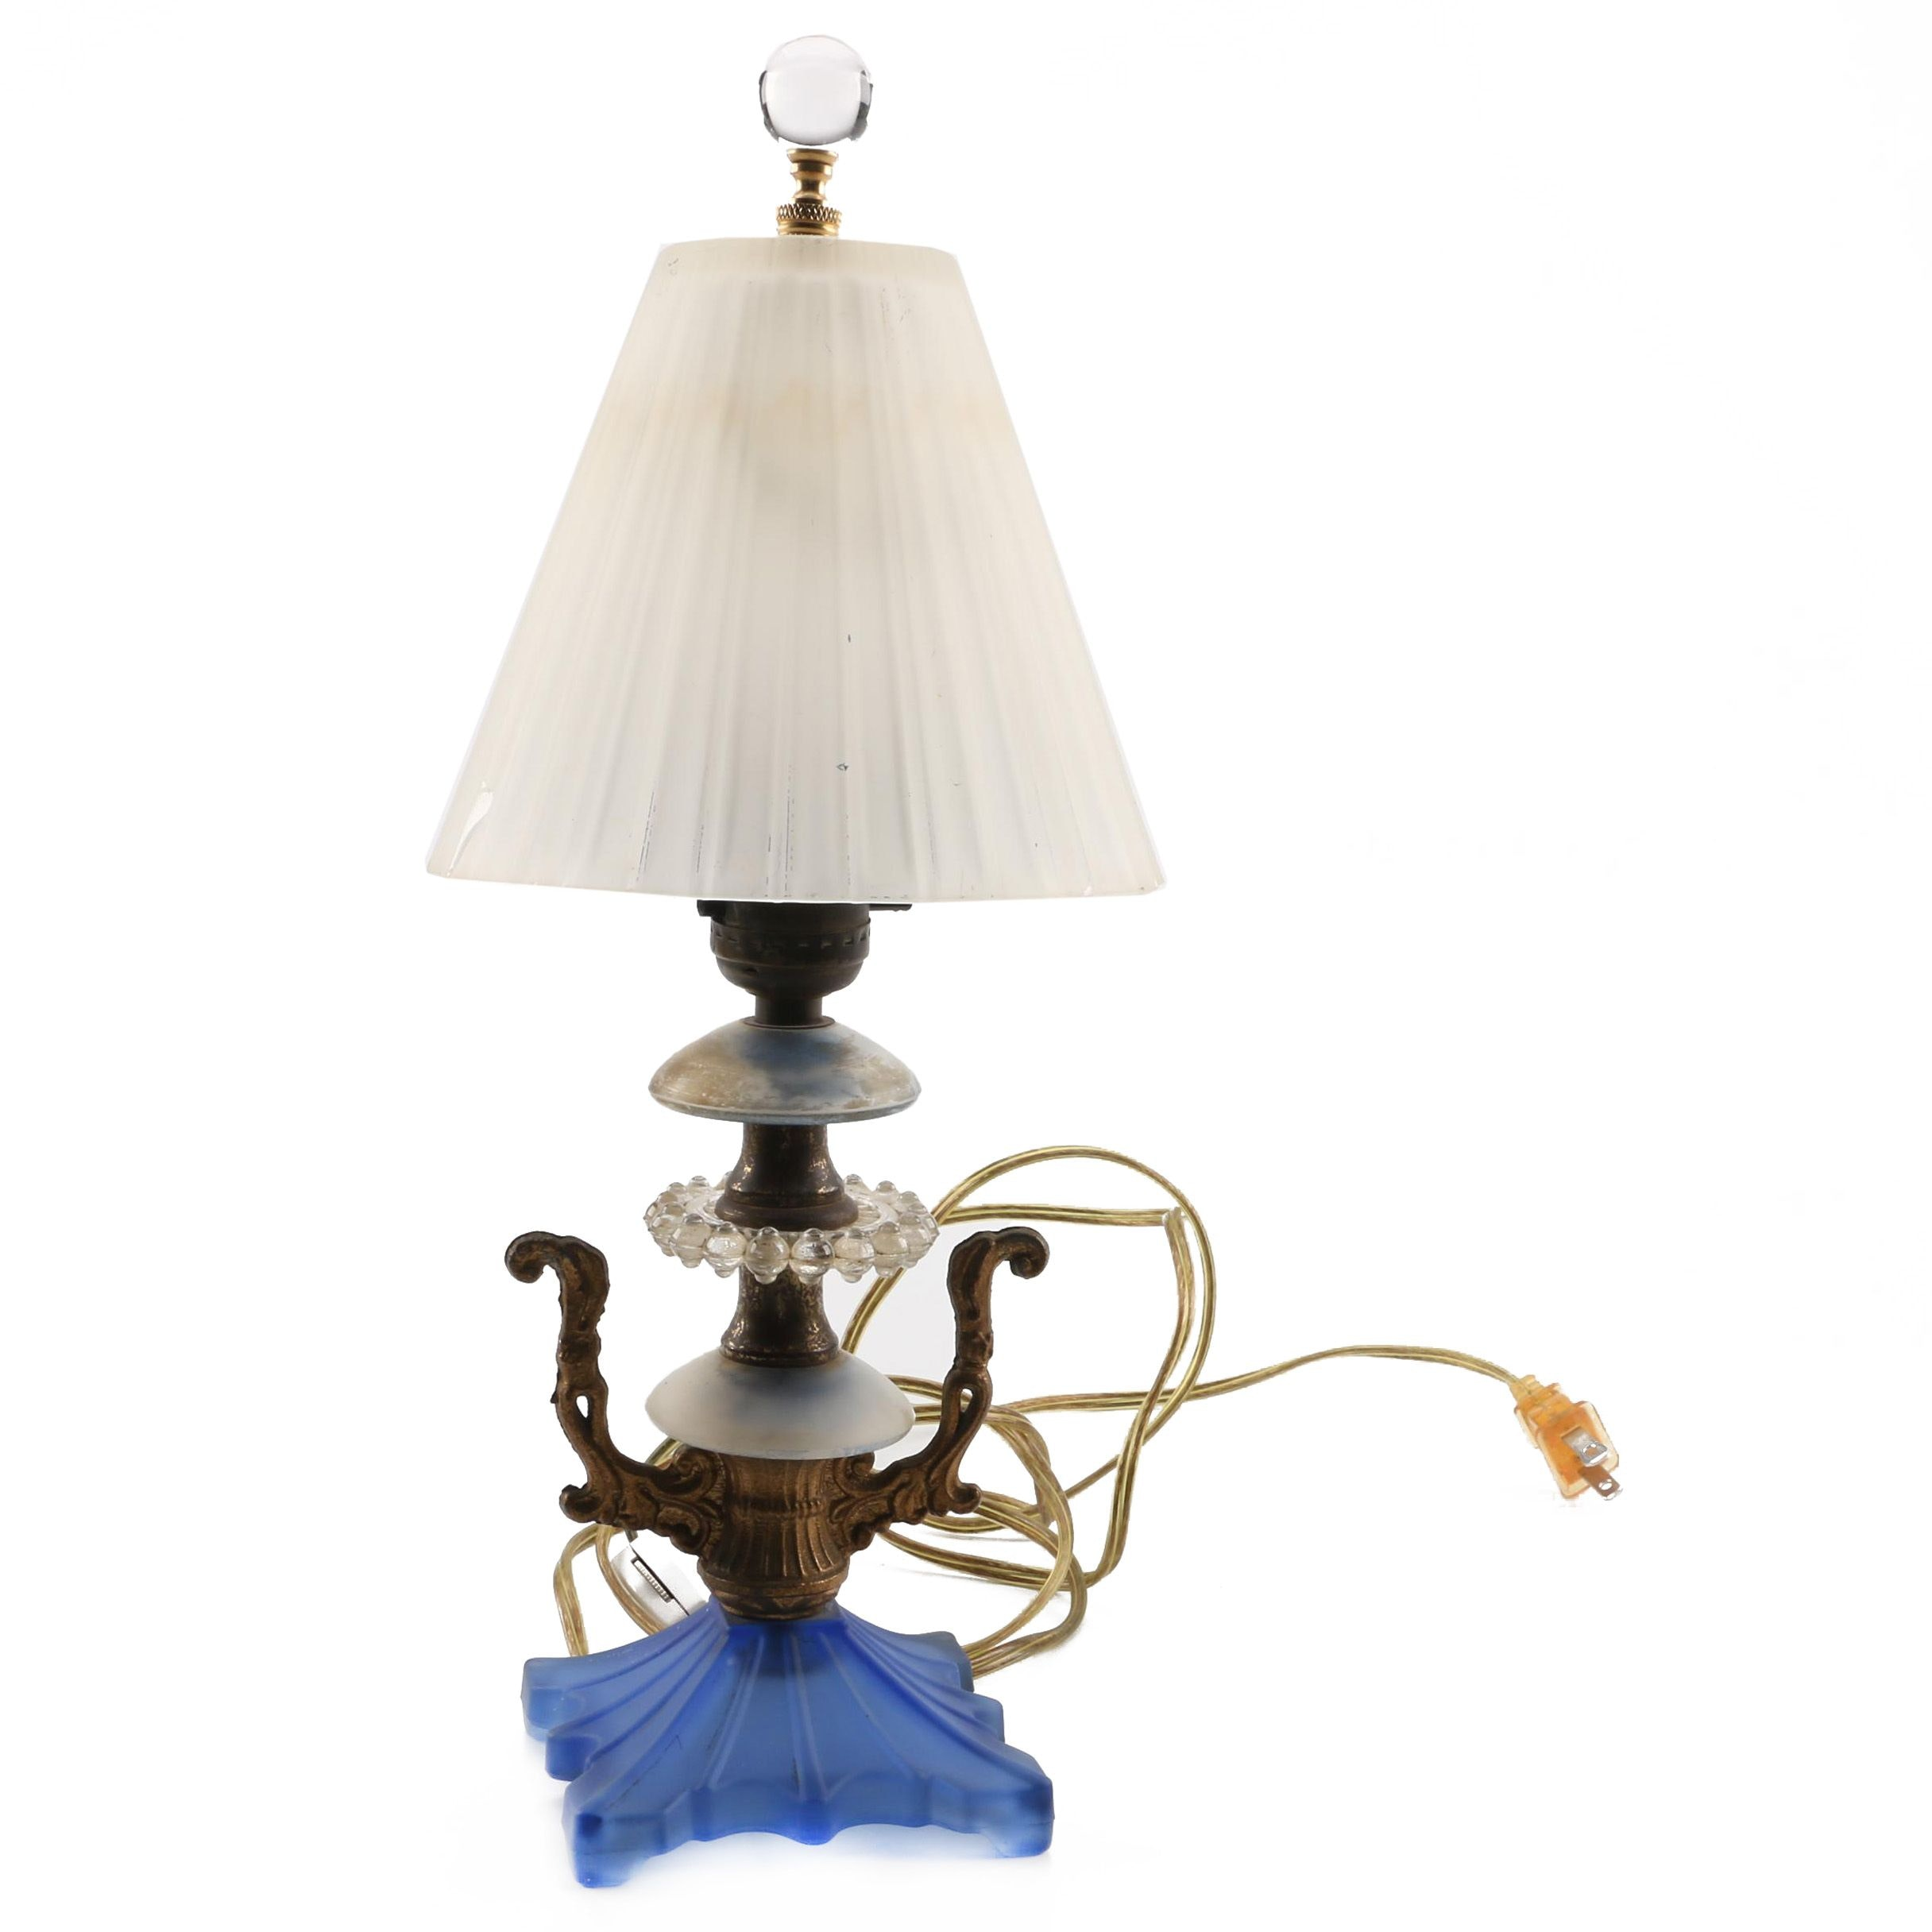 Ornate Glass and Brass Accent Lamp